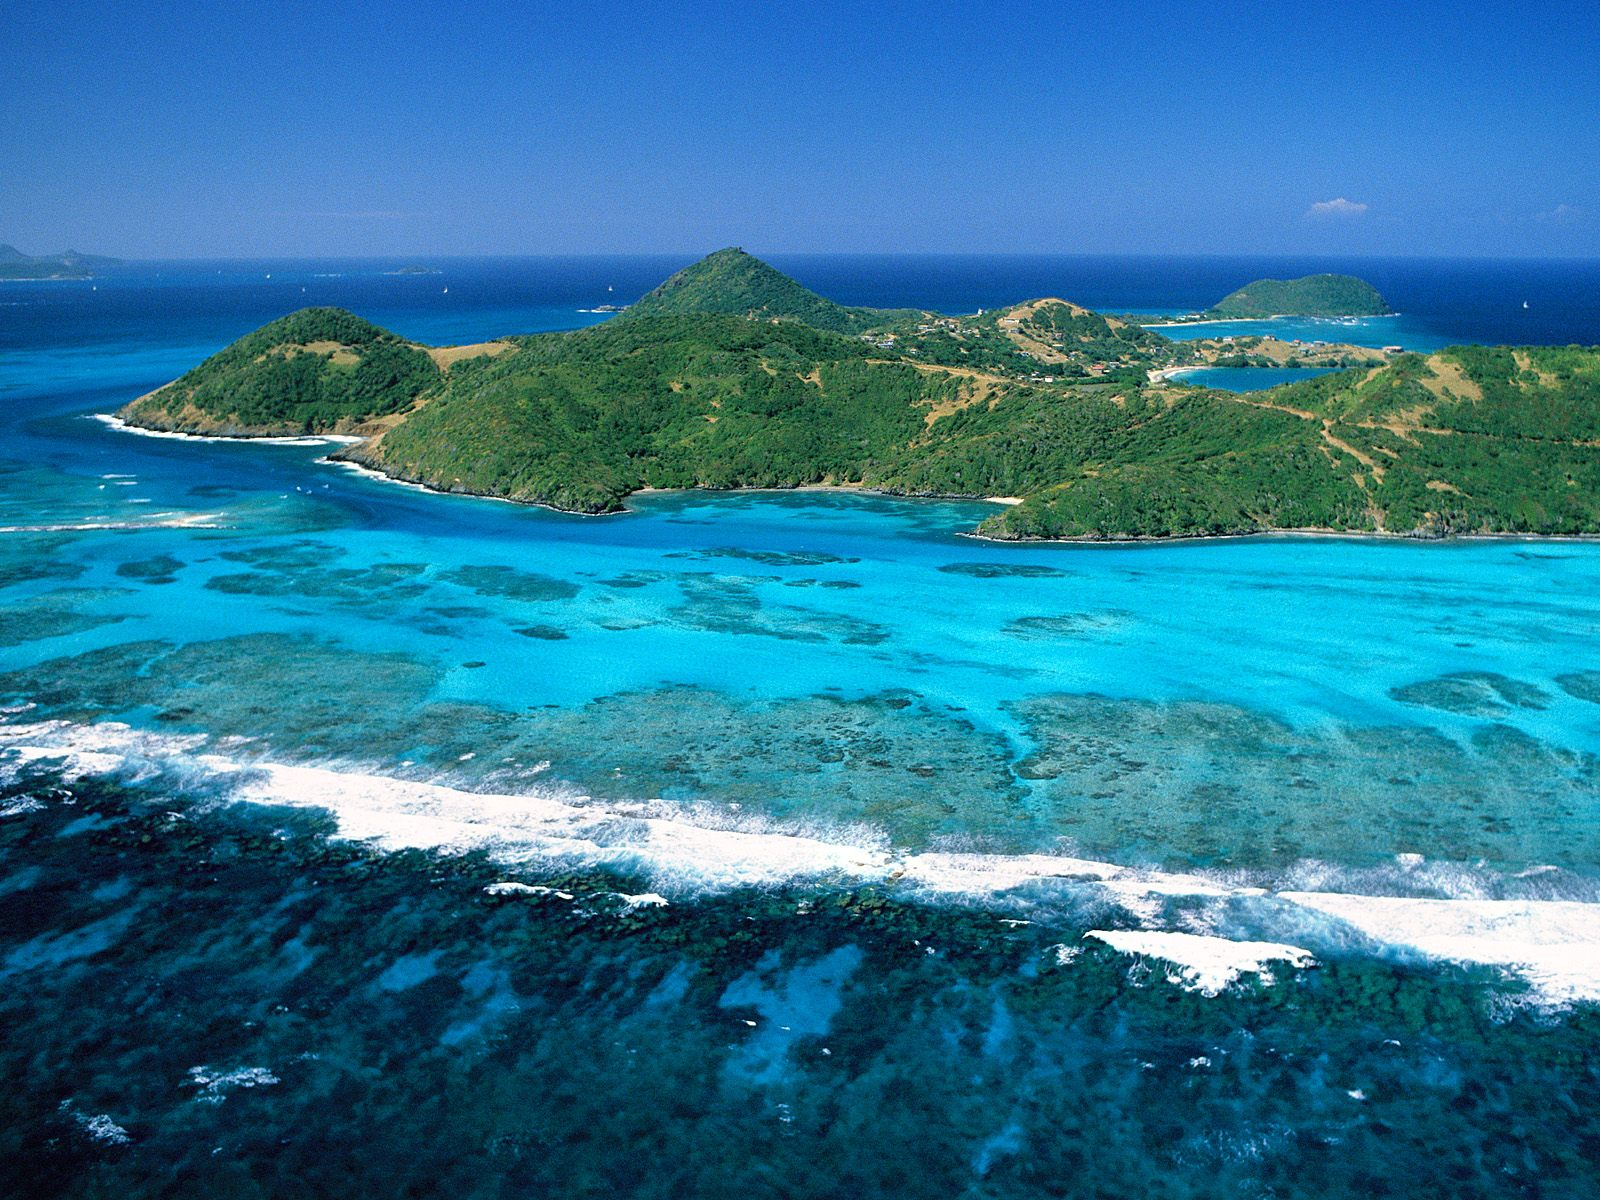 Caribbean Island Wallpapers For Desktop 1600x1200